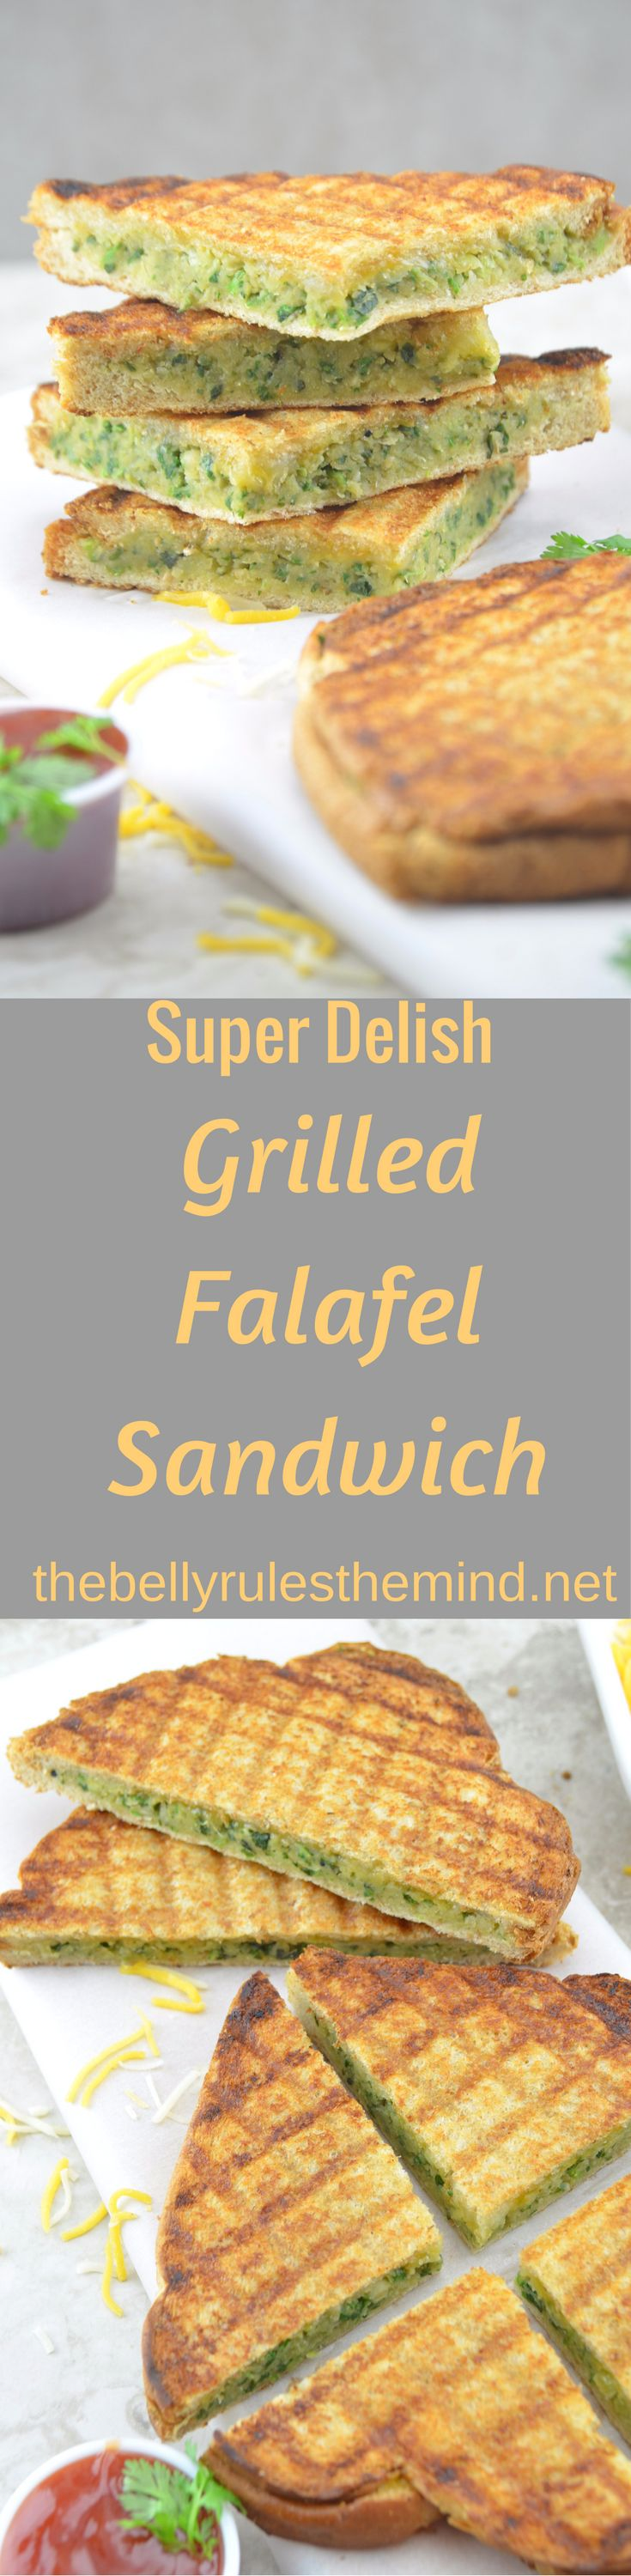 This Incredibly delicious Grilled Falafel sandwich is unlike any other you've tasted and not your regular sandwich recipe. Today I am sharing a very quick, full of protein and delicious Grilled falafel sandwich recipe that is loaded with chickpeas and some cheese ;)  www.thebellyrulesthemind.net @bellyrulesdmind